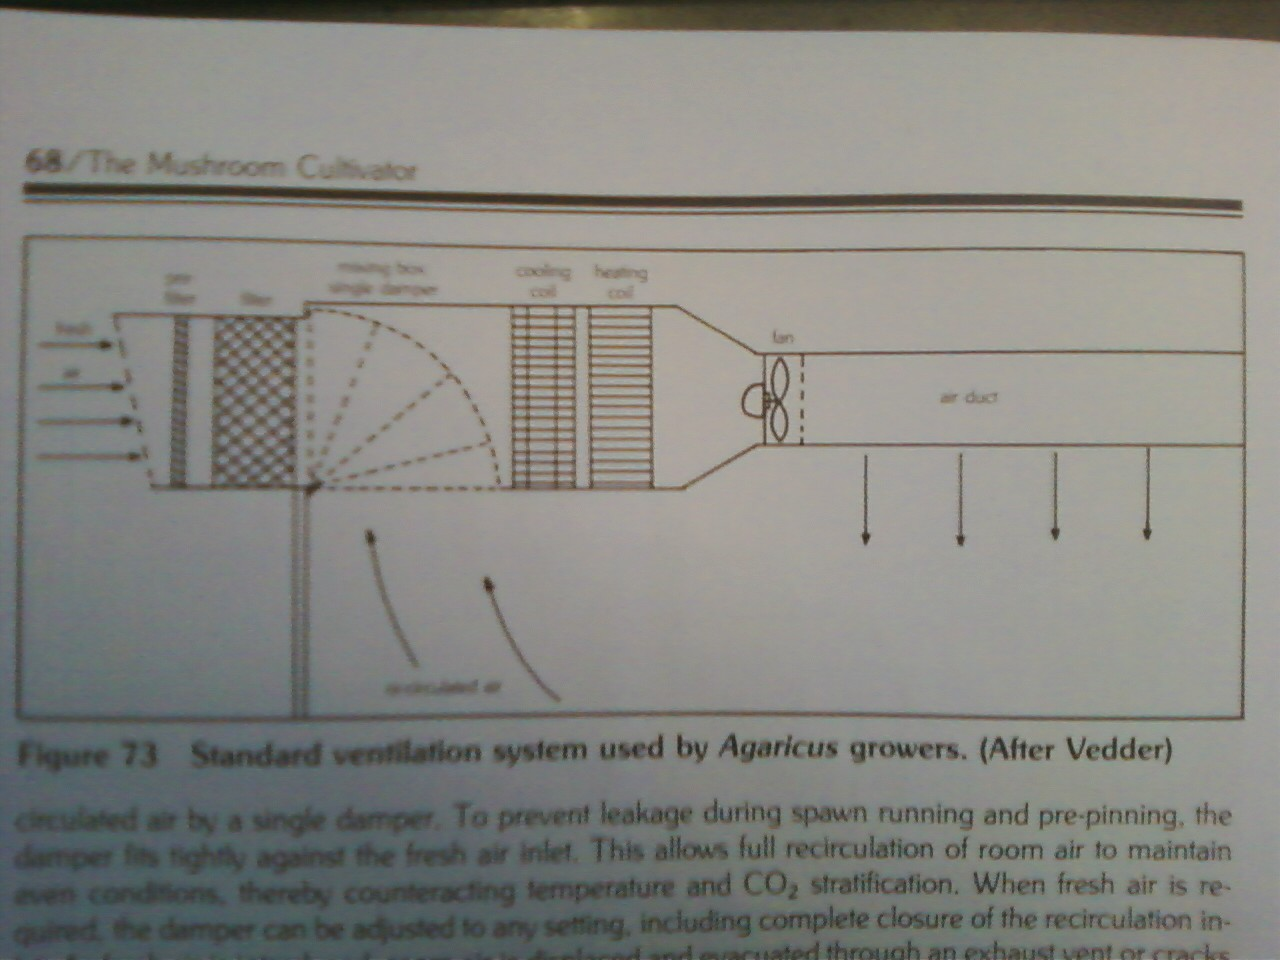 grow room designs with pictures and diagram rj11 to rj45 cable sandshrooms april 2012